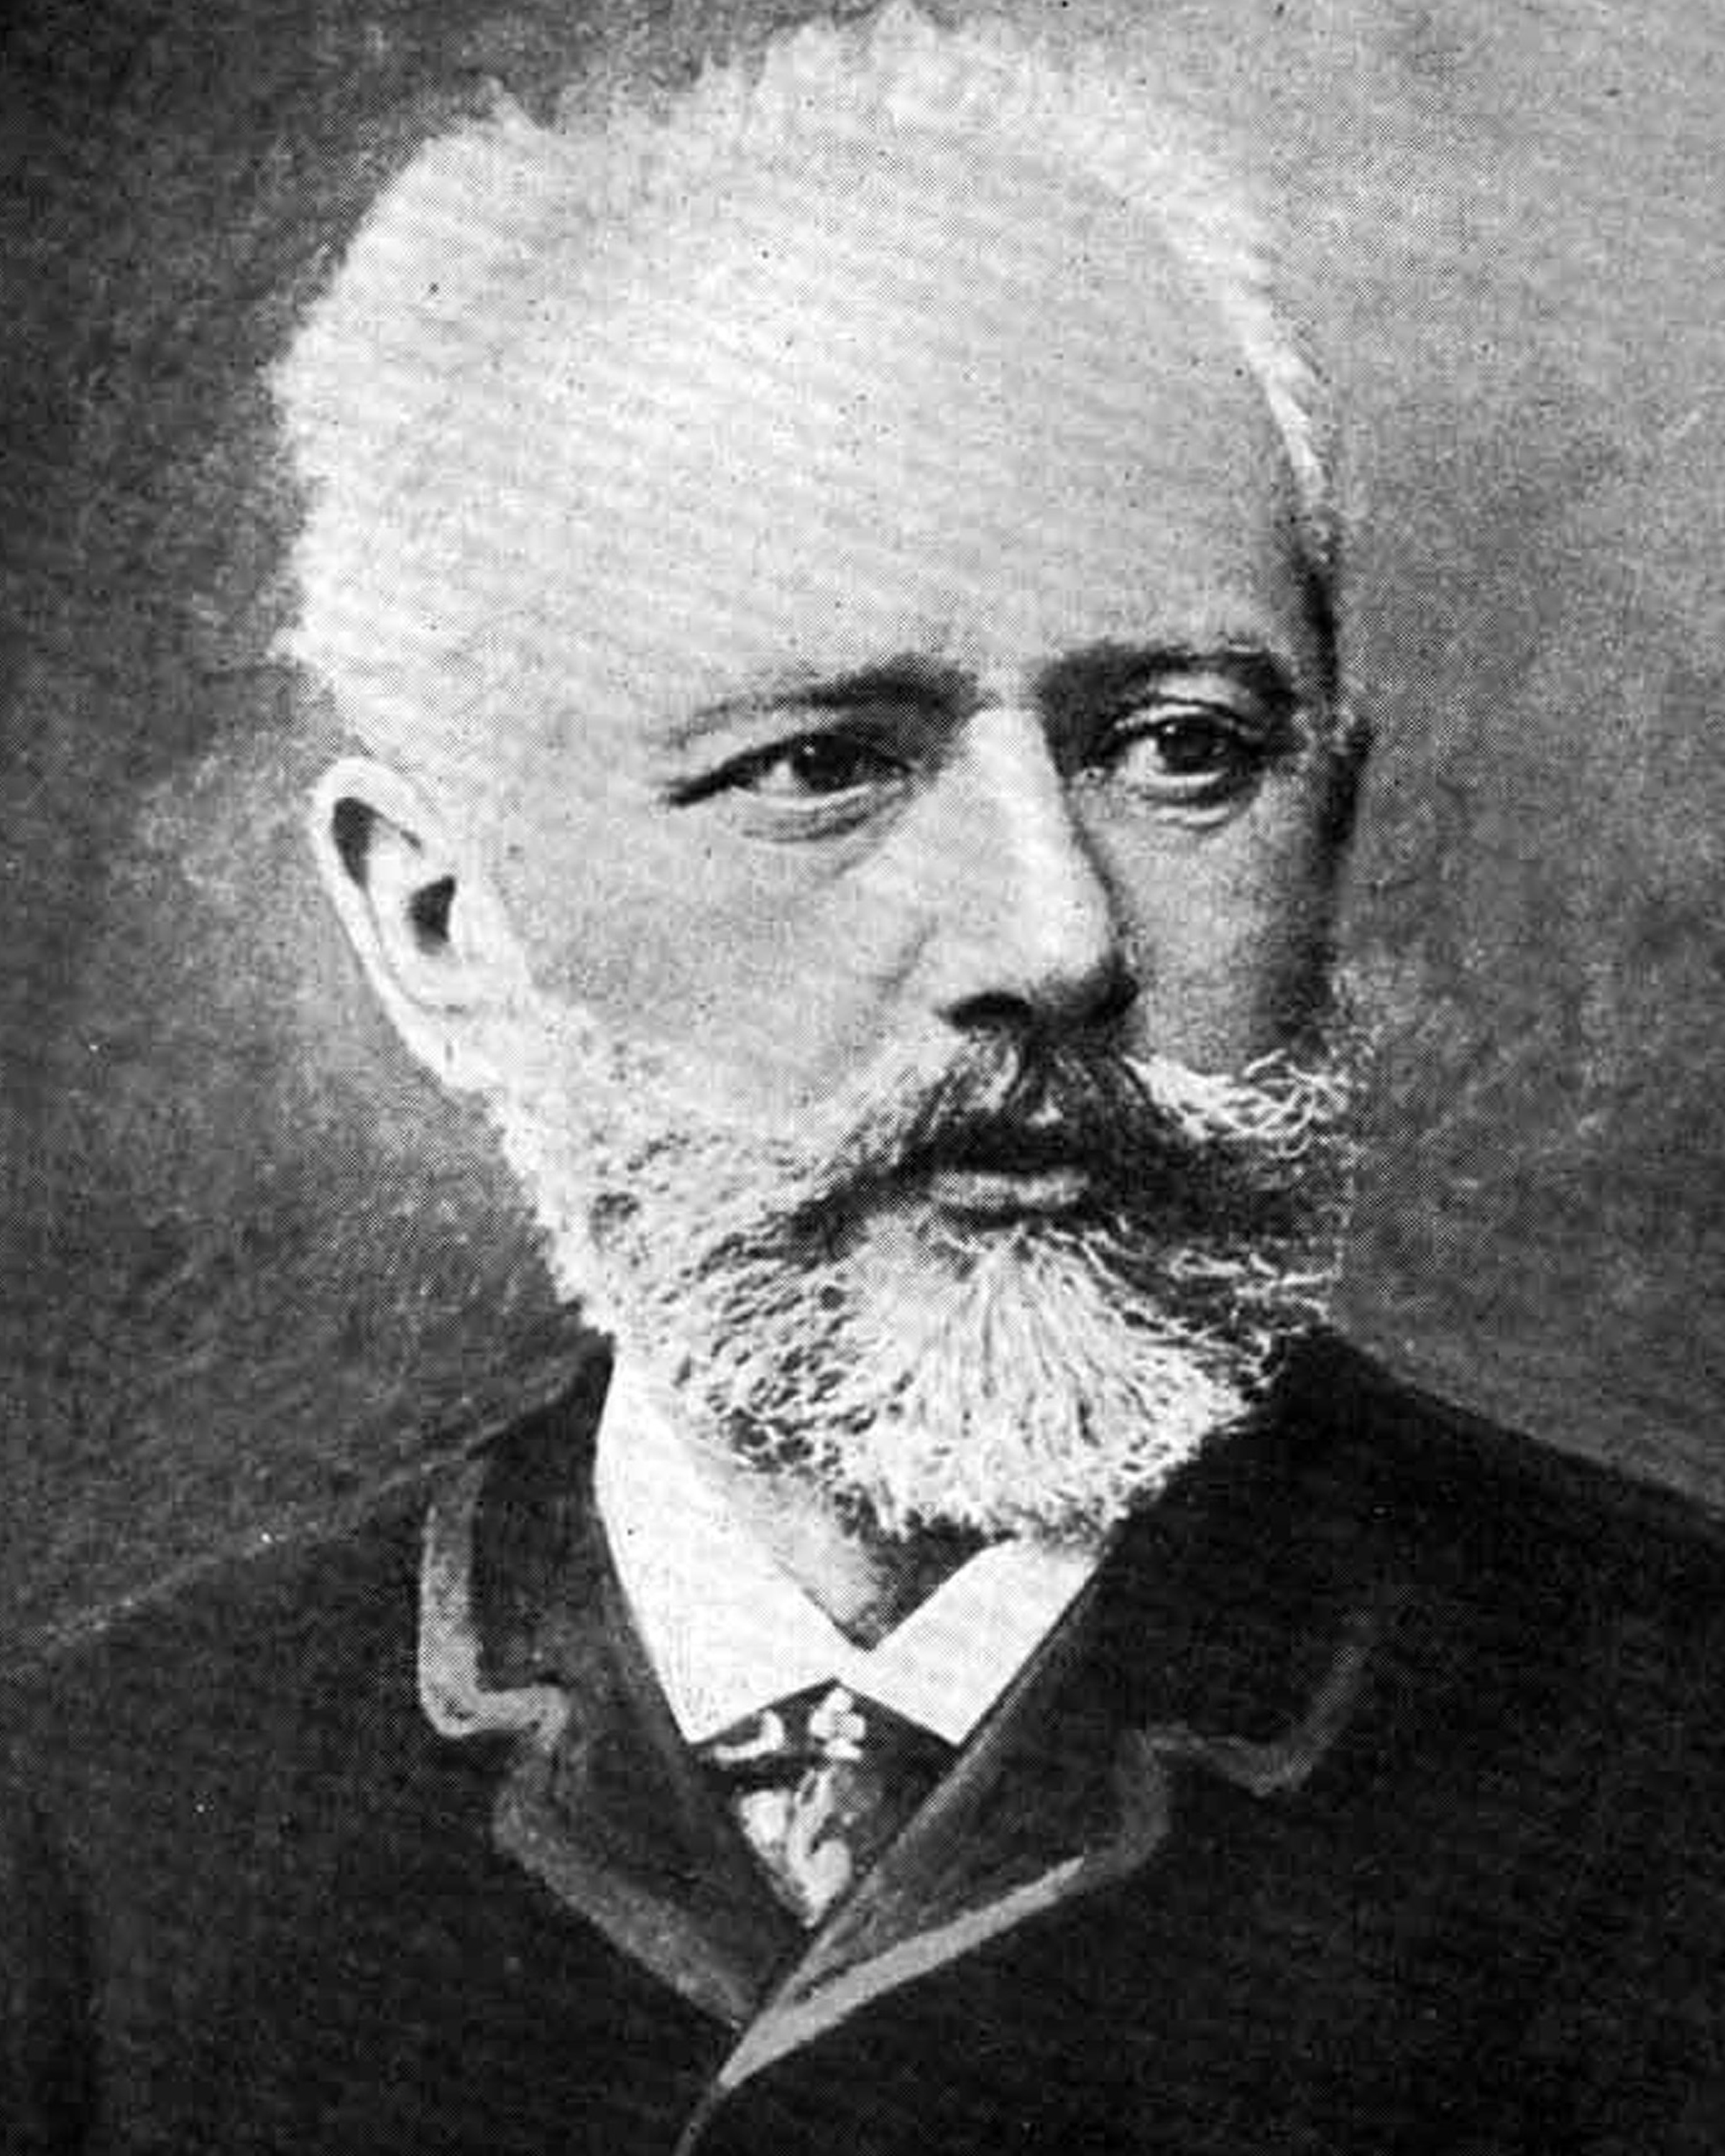 a biography of the russian composer pyotr illyich tchaikovsky Media in category pyotr ilyich tchaikovsky the following 86 files are in this category, out of 86 total.